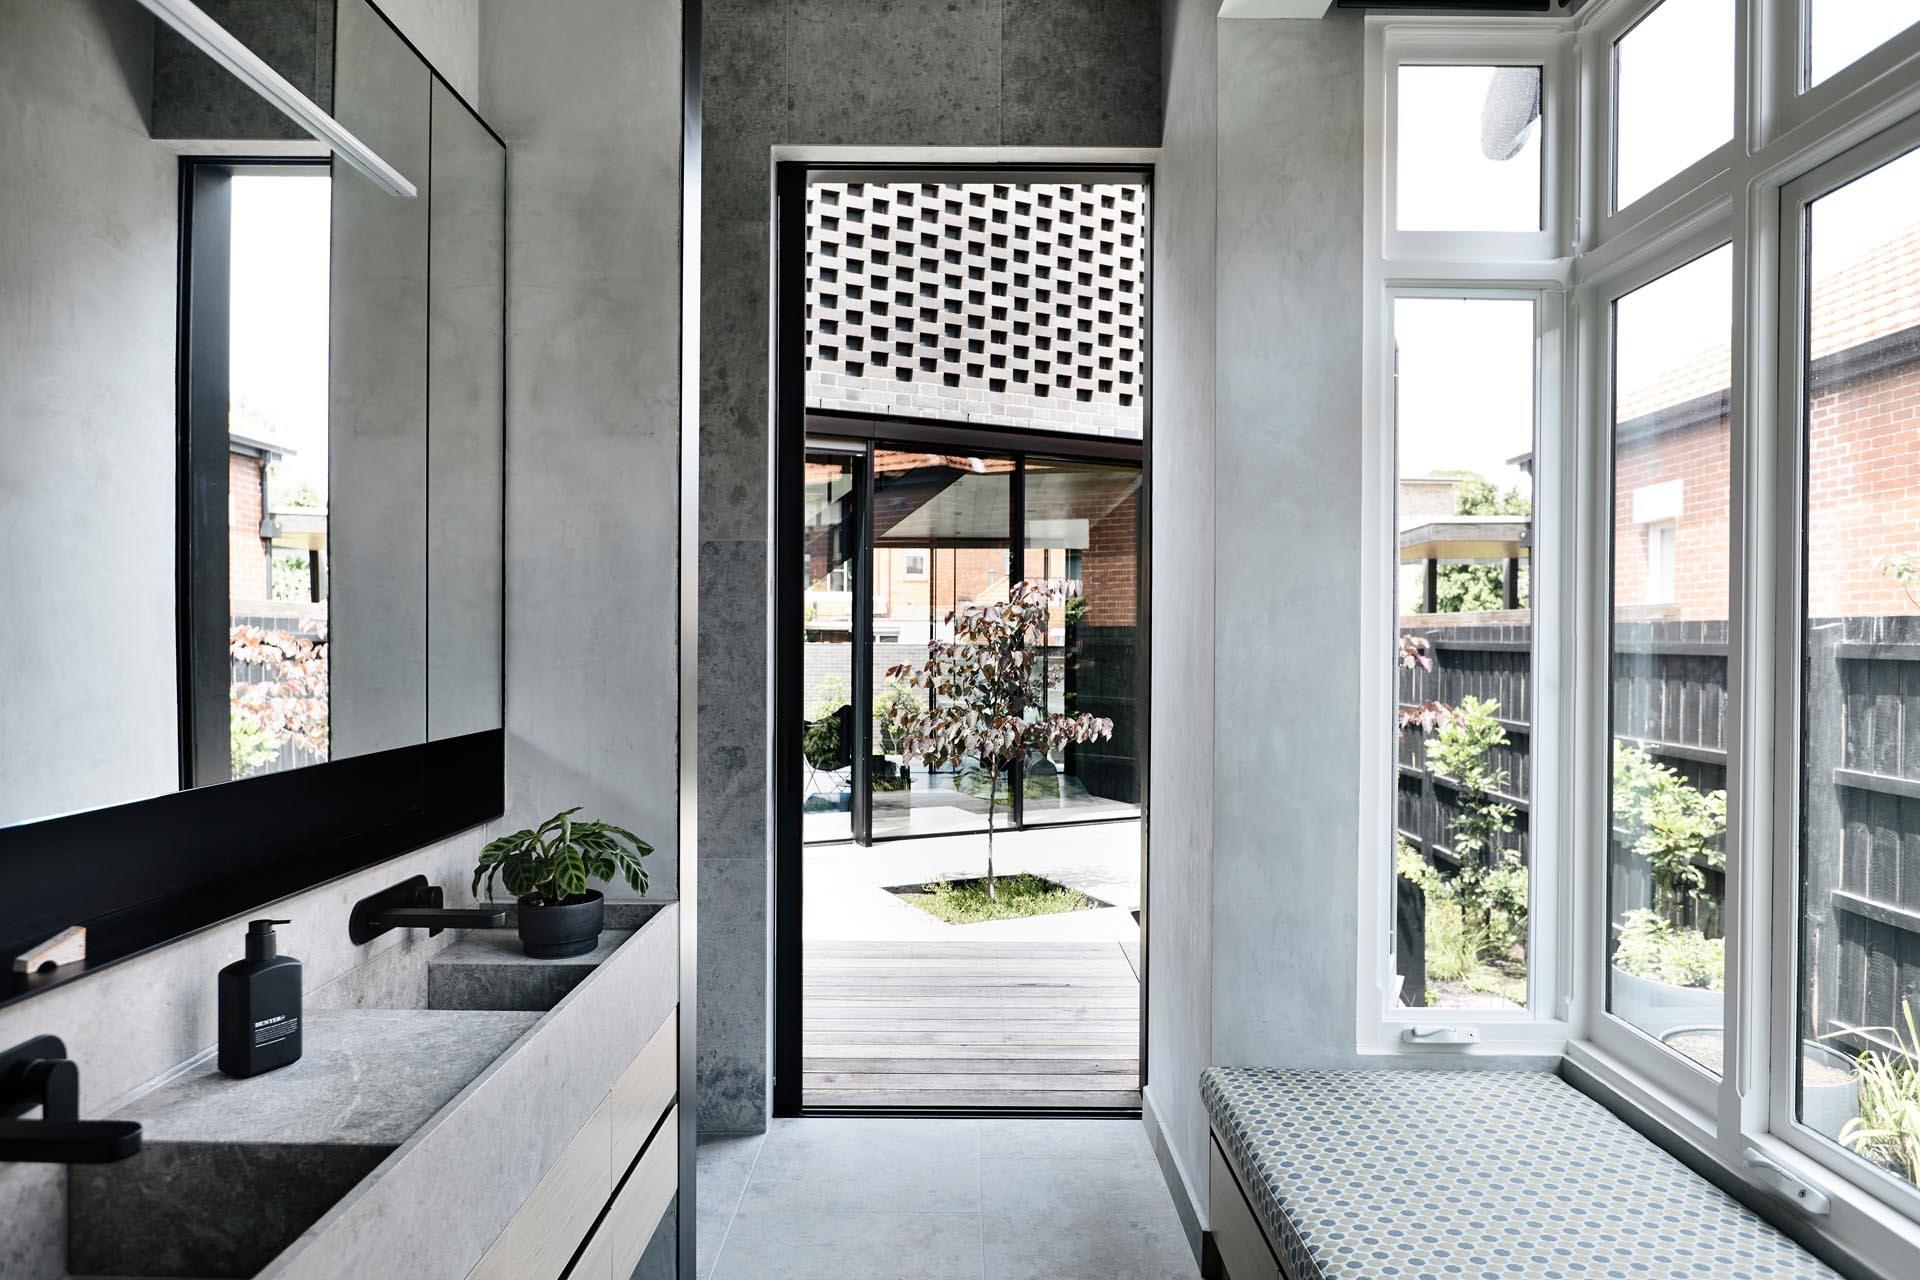 A modern en-suite bathroom that opens to a courtyard.